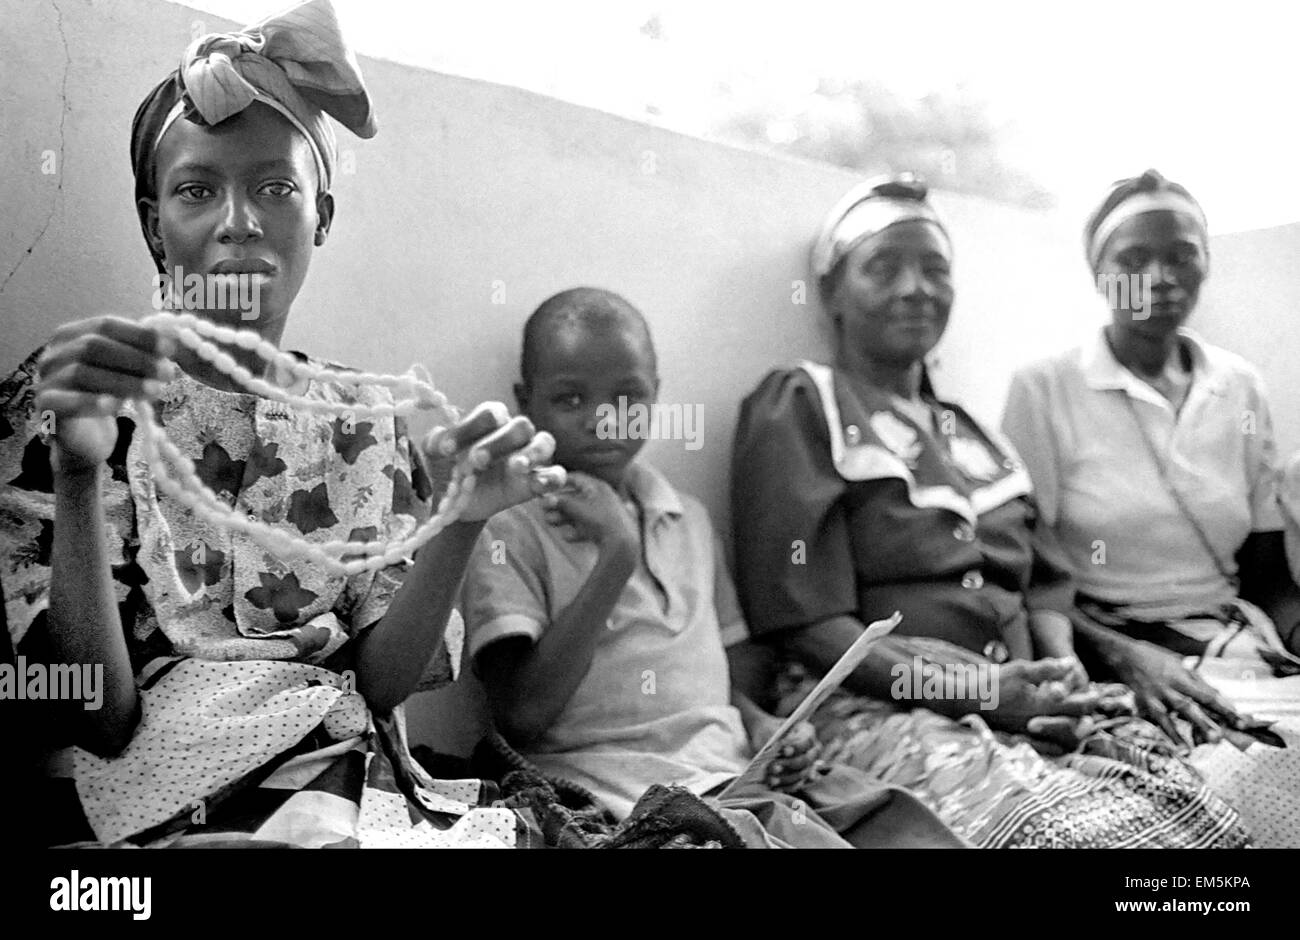 Mutomo hospital. Kitui. Kenya. Women with AIDS are associated and made necklaces and other souvenirs to raise funds. - Stock Image